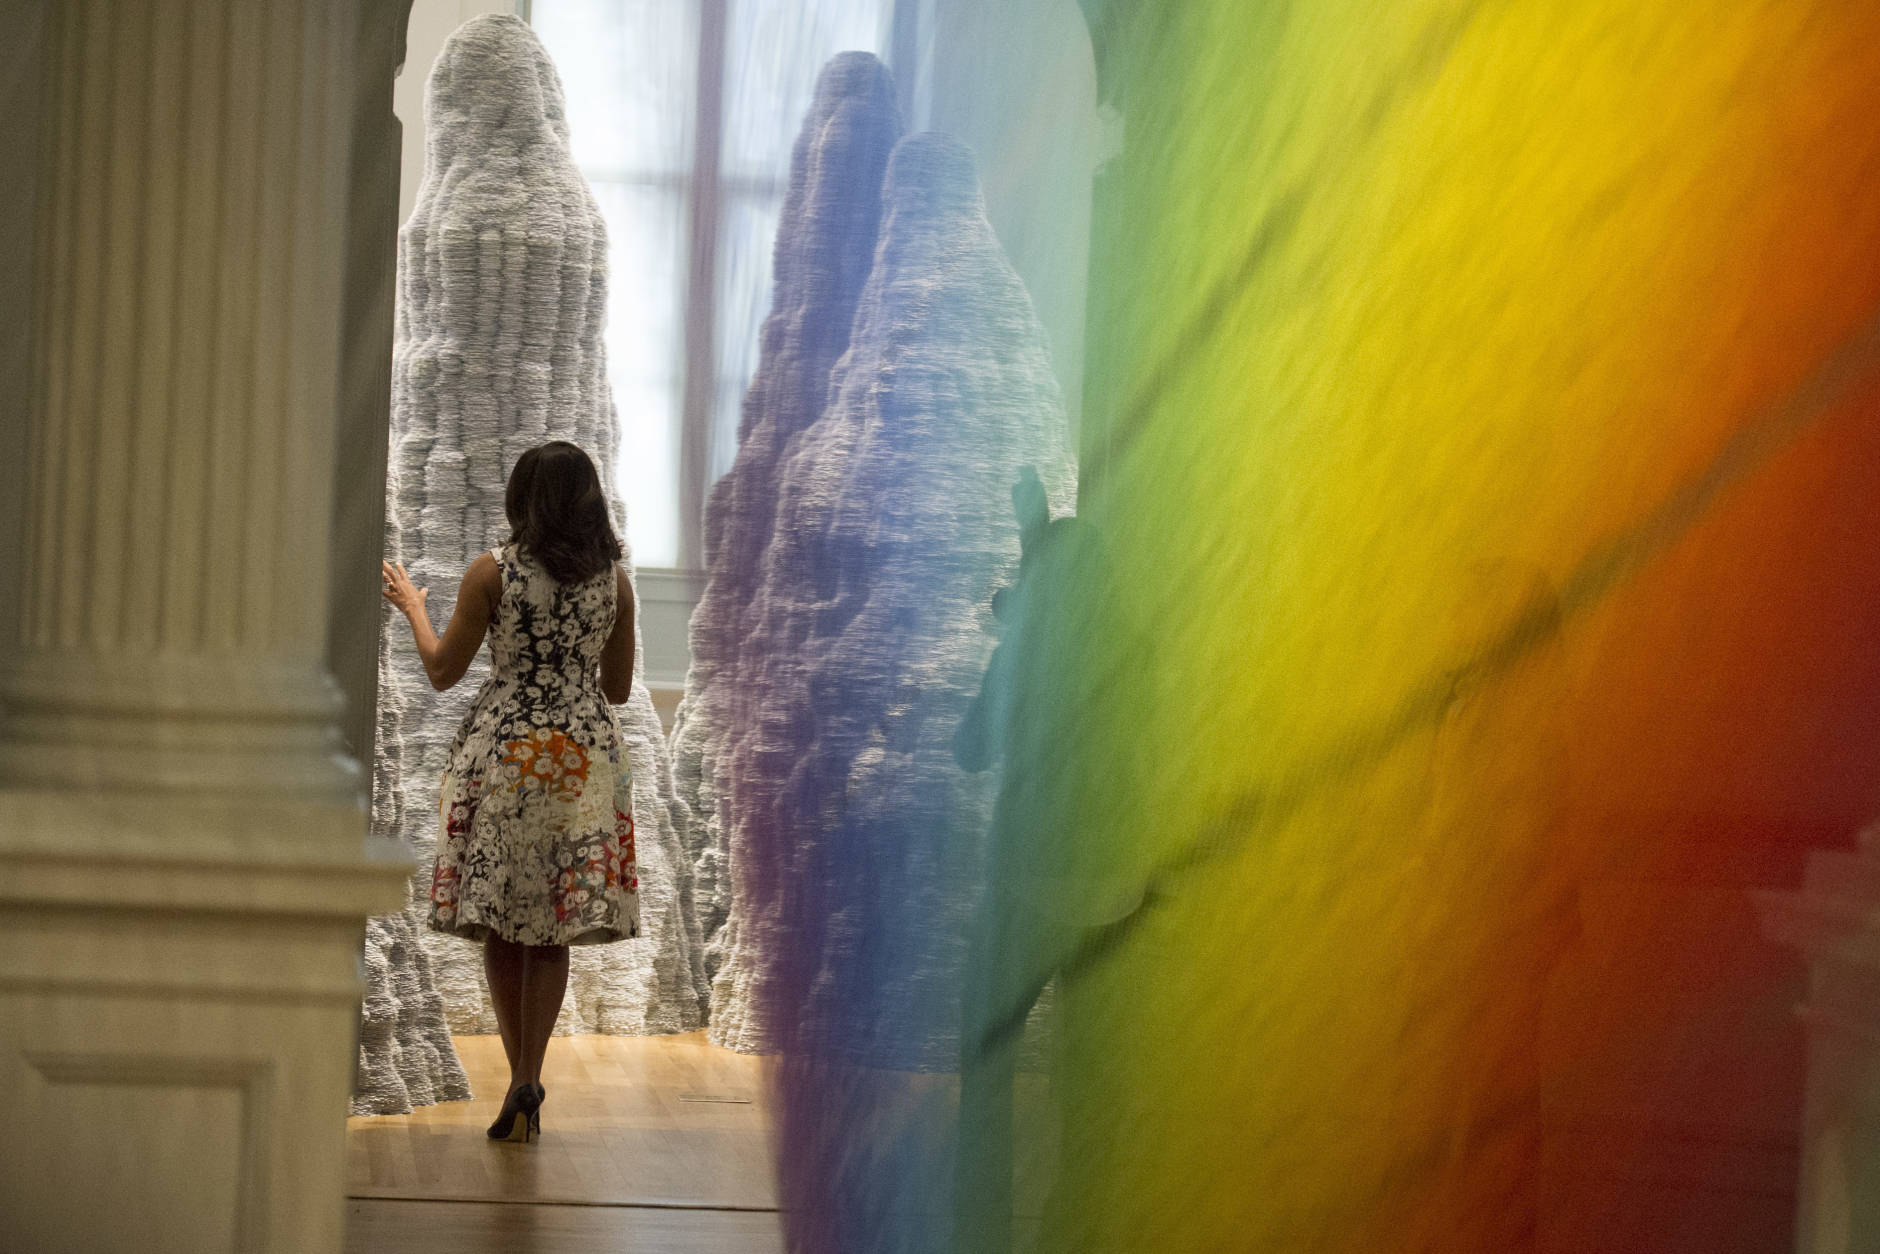 First lady Michelle Obama looks at the art installation Plexus A1 by Gabrial Dawe as she tours the Renwick Gallery in Washington, Friday, May 13, 2016, with the spouses of Nordic country leaders. (AP Photo/Cliff Owen)